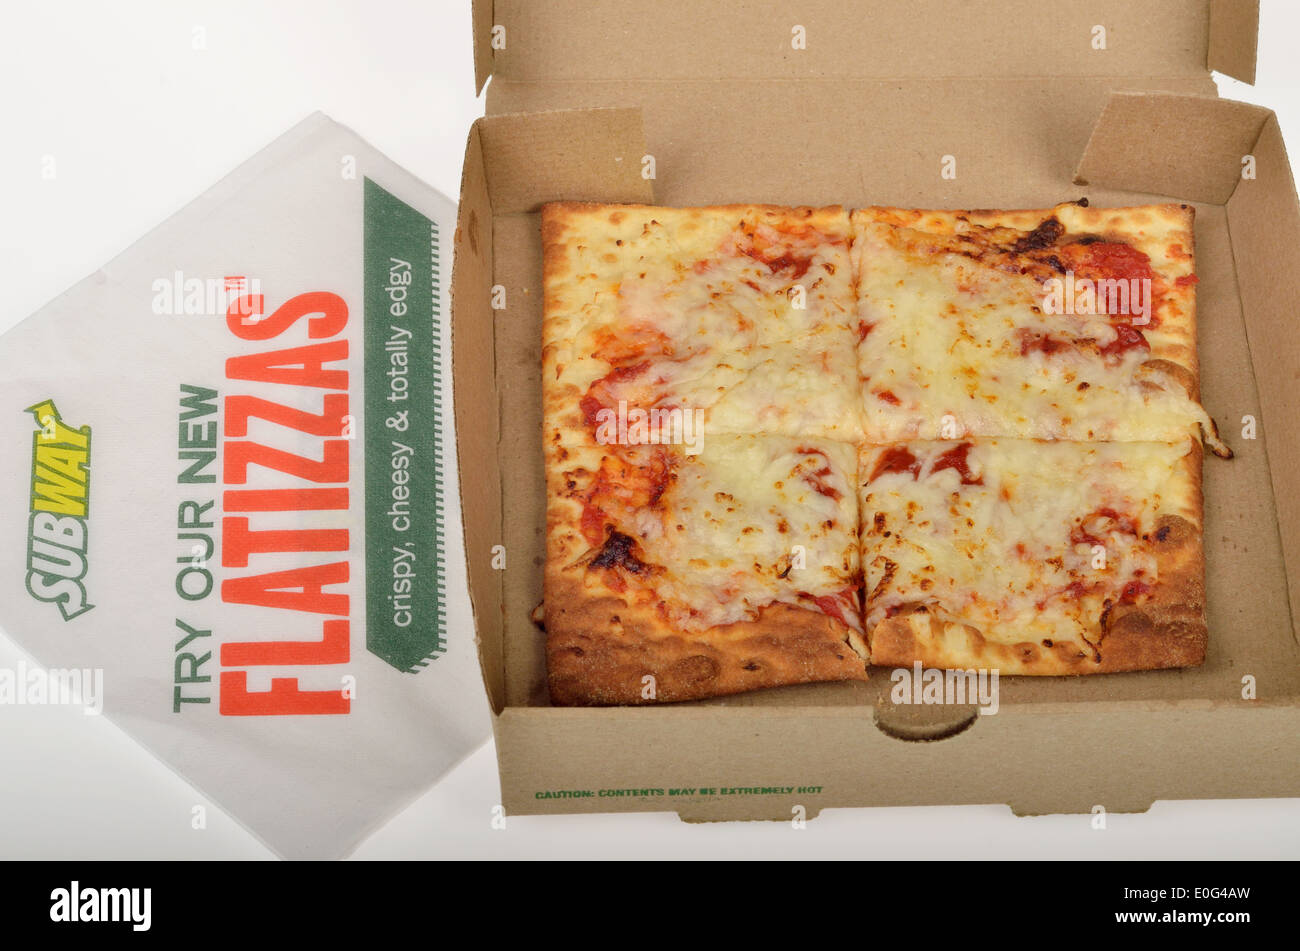 subway fast food flatizza cheese square pizza in box packaging on